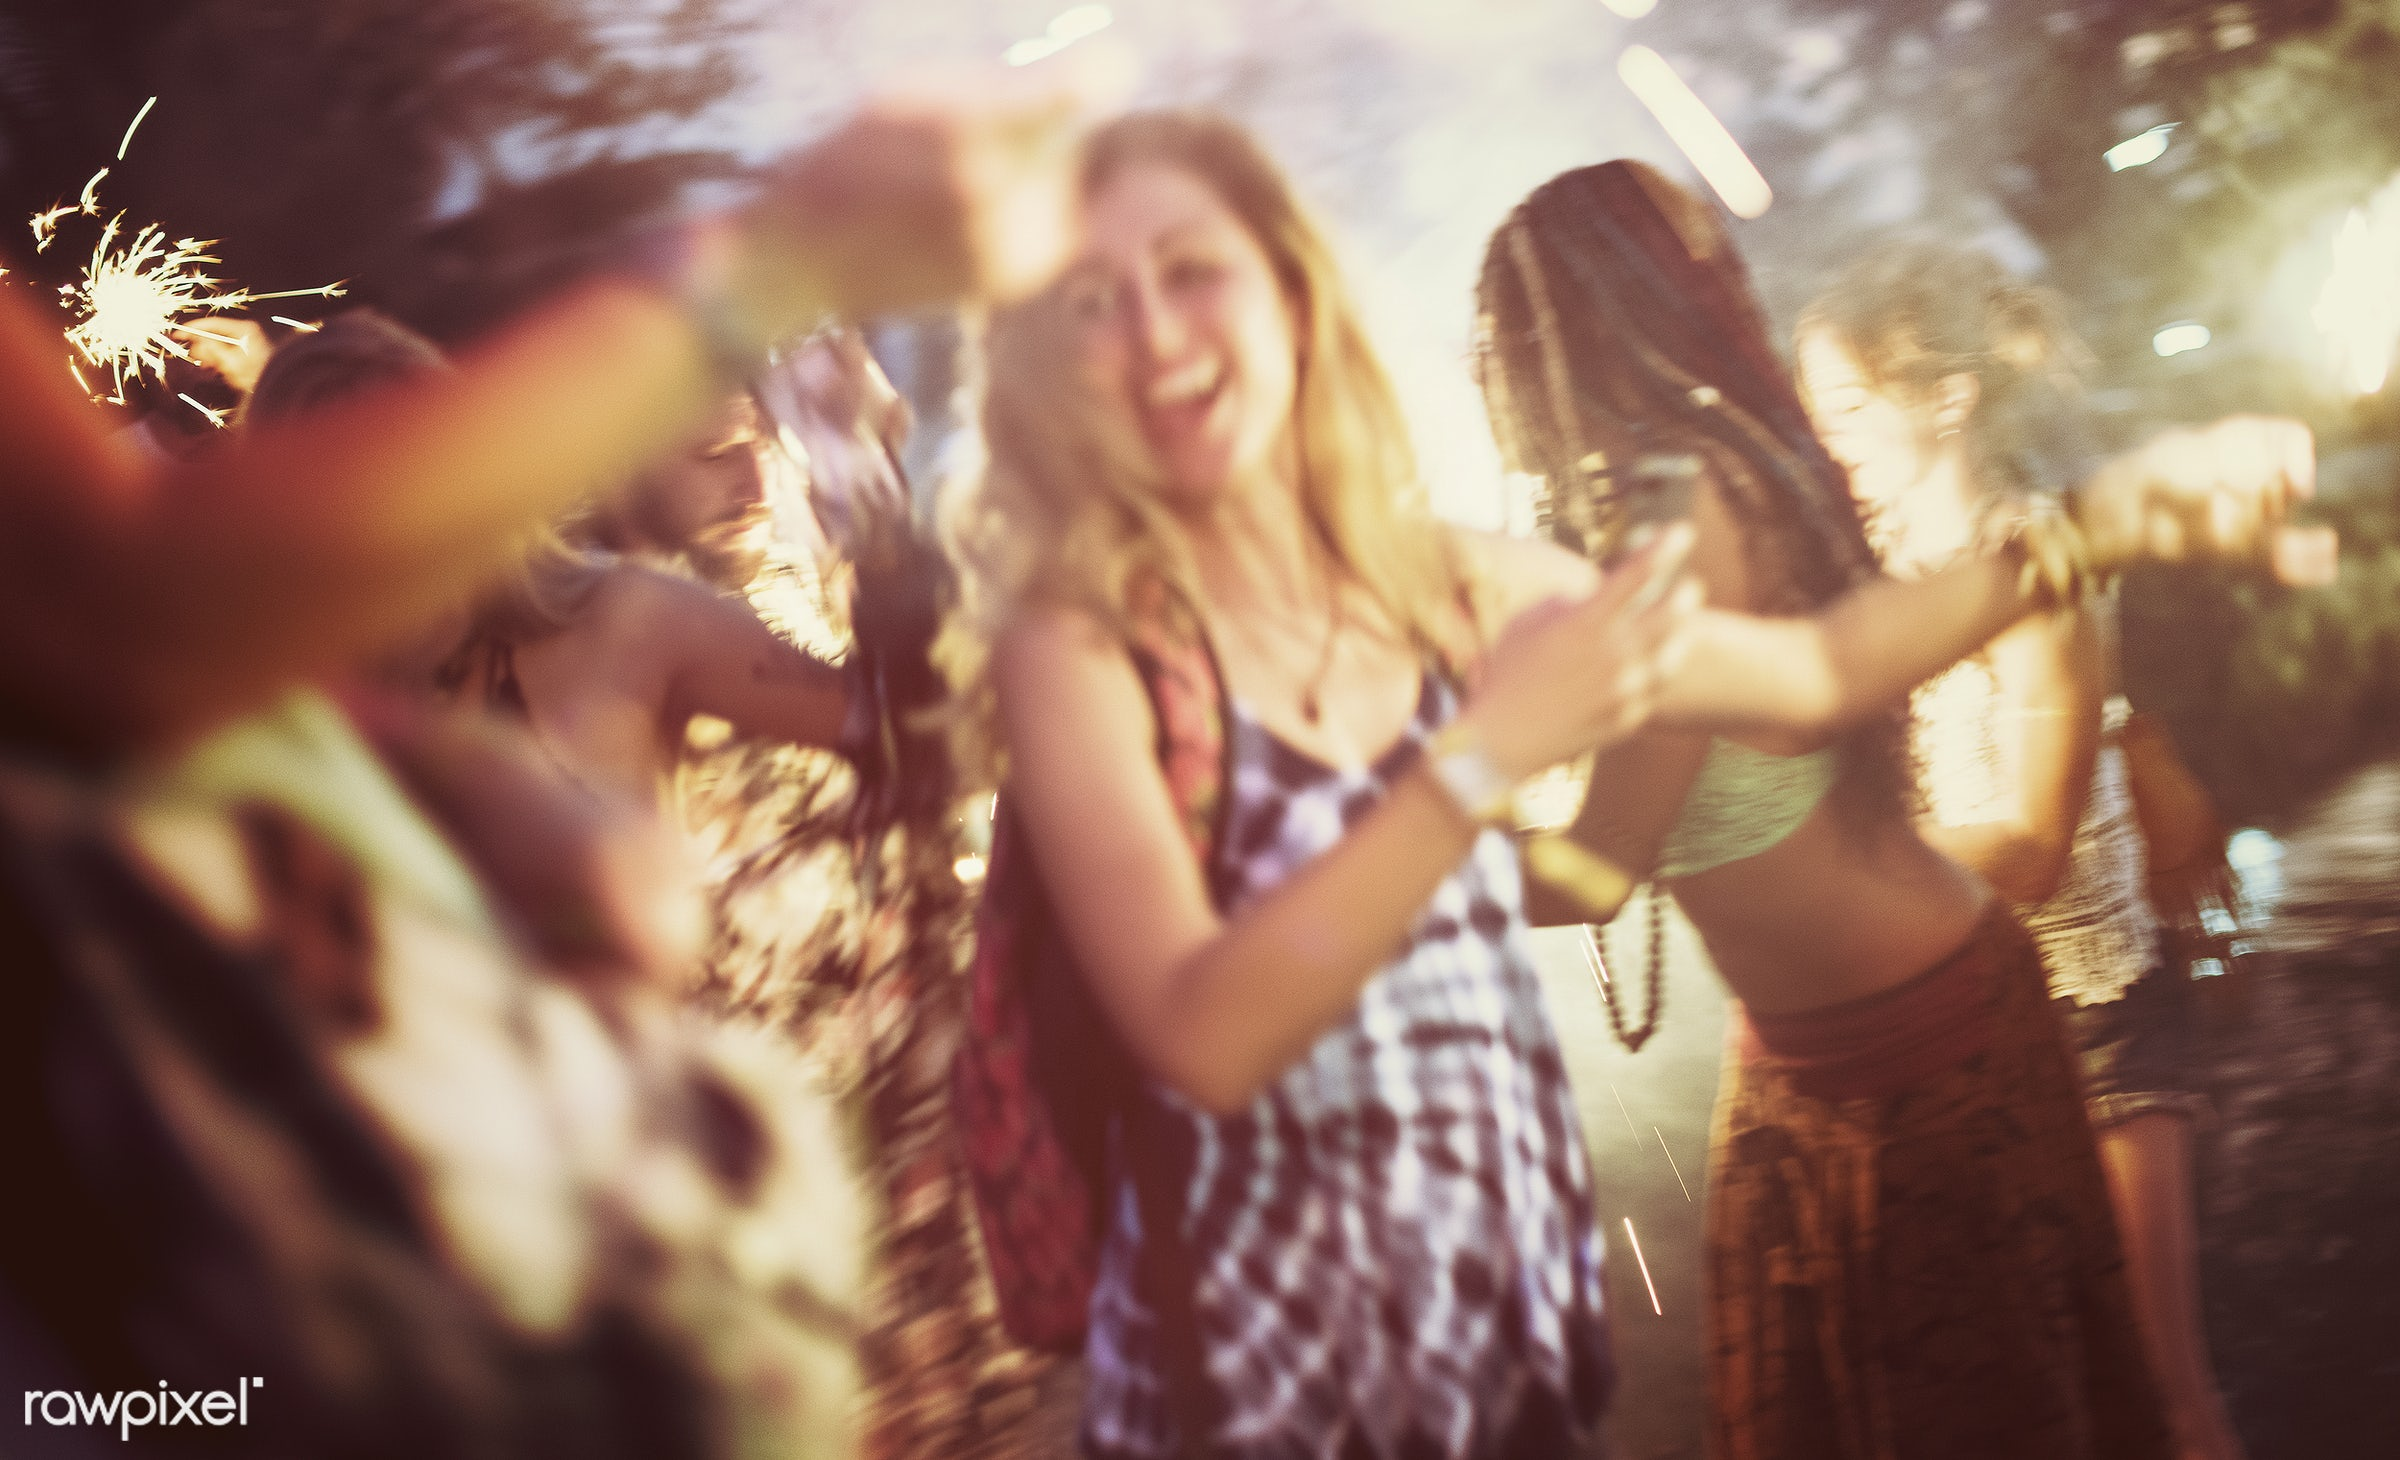 concert, bonding, party, people, friends, event, lifestyle, friendship, weekend, leisure, happiness, fun, youth, holiday,...